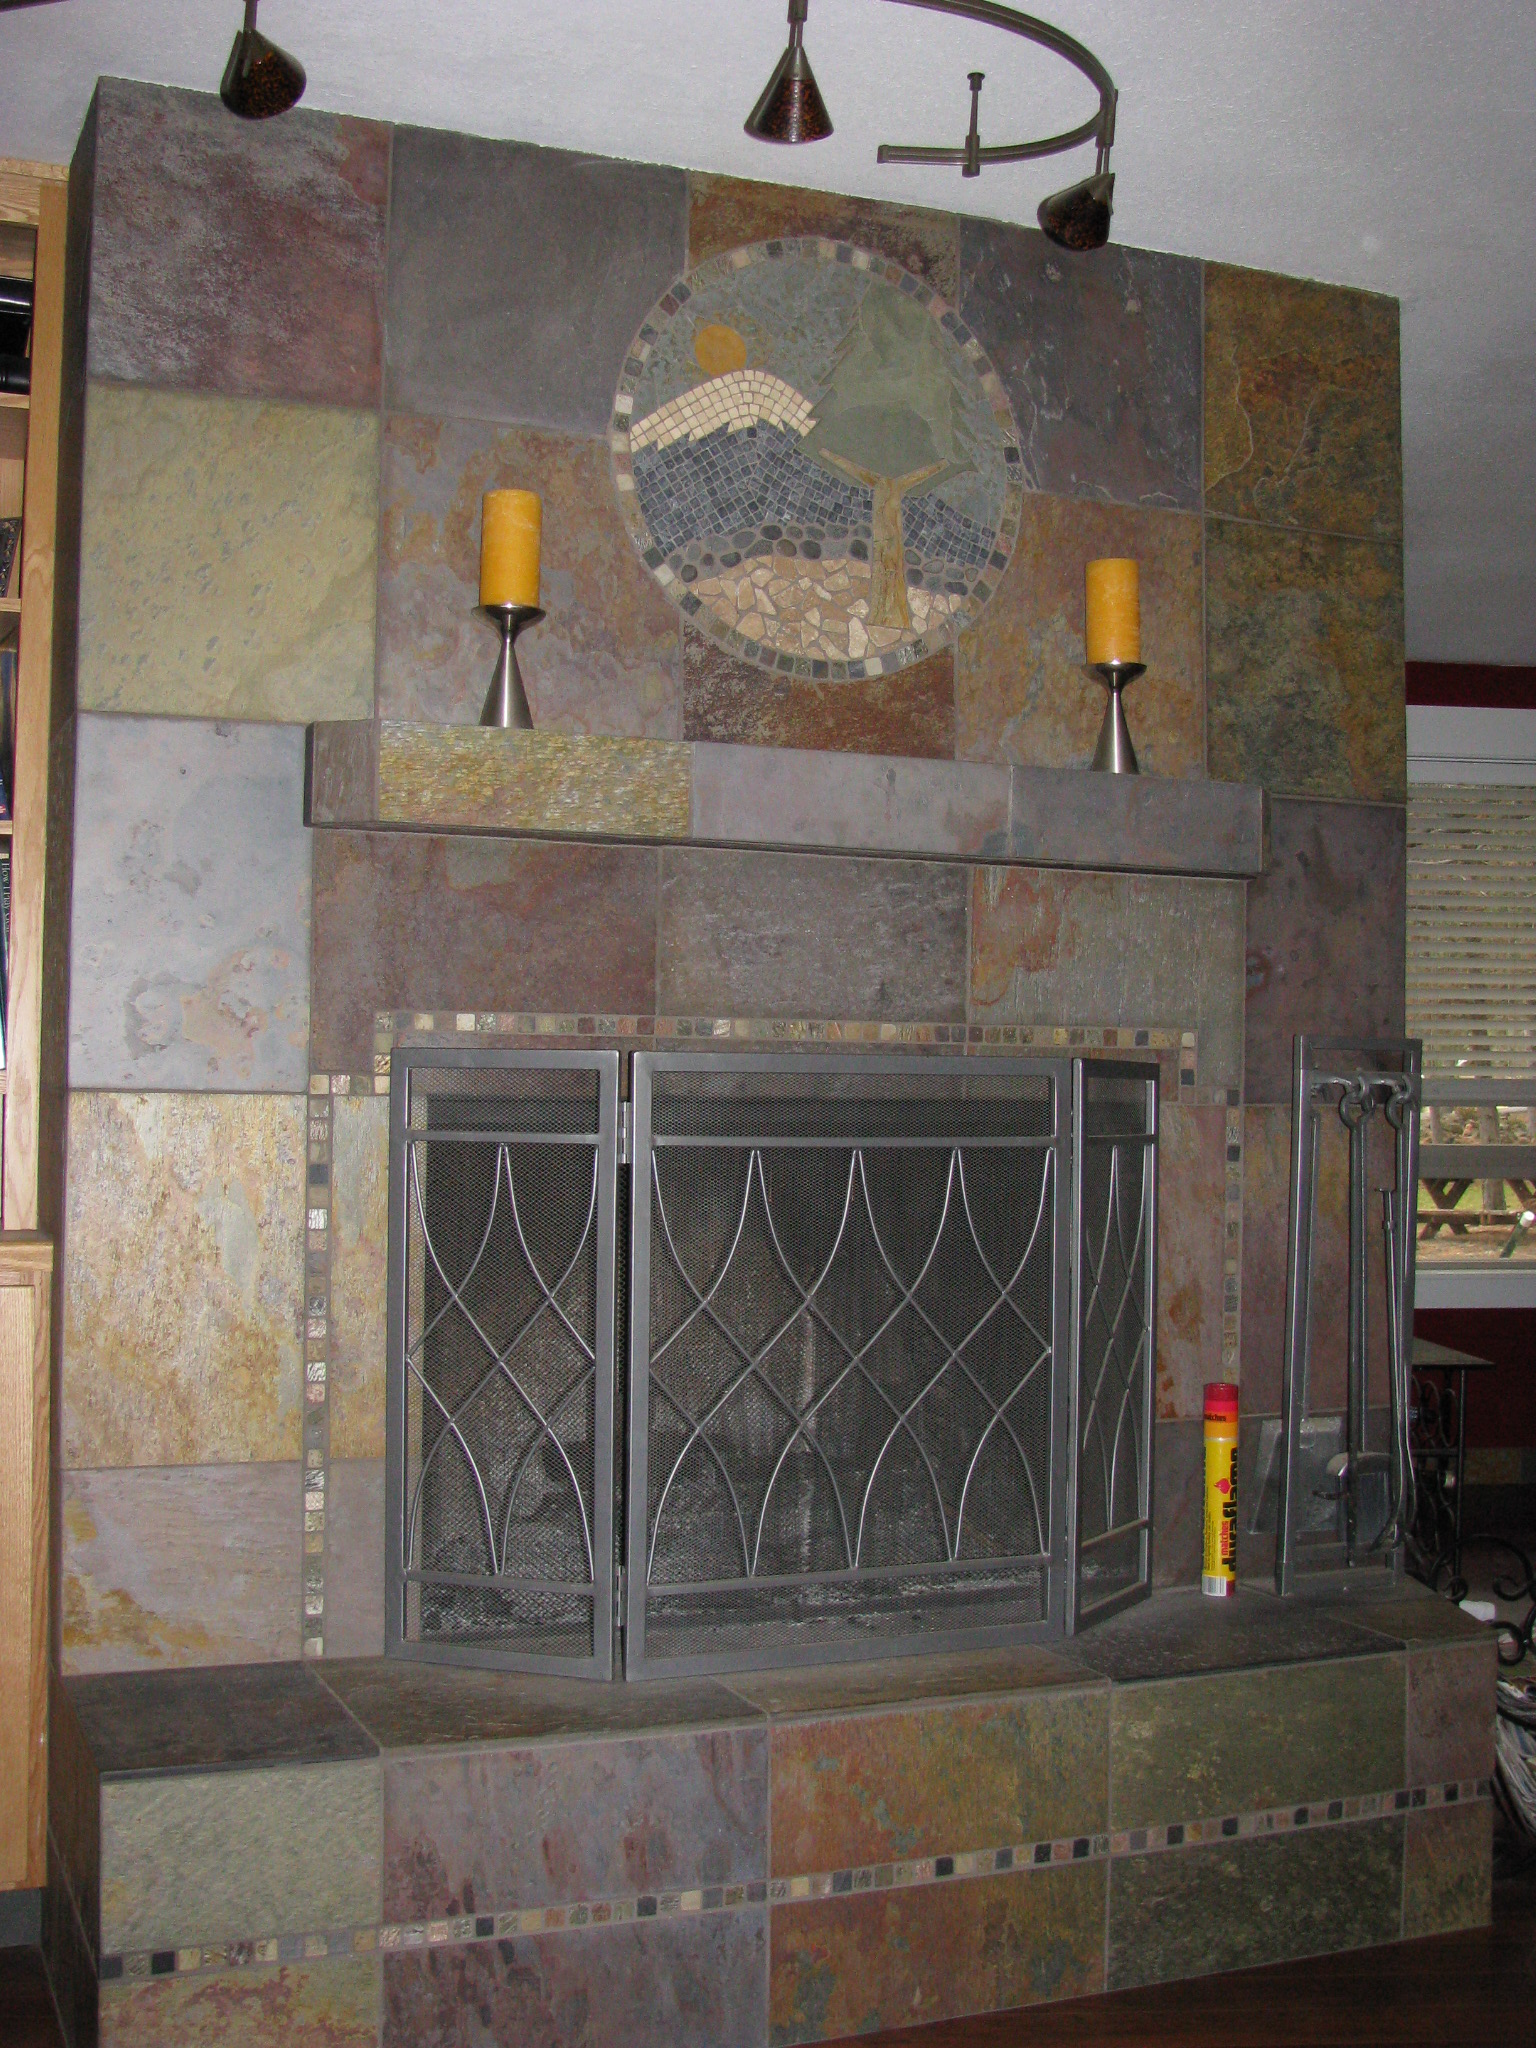 bill home resurfacing hussell contractors hq fireplace